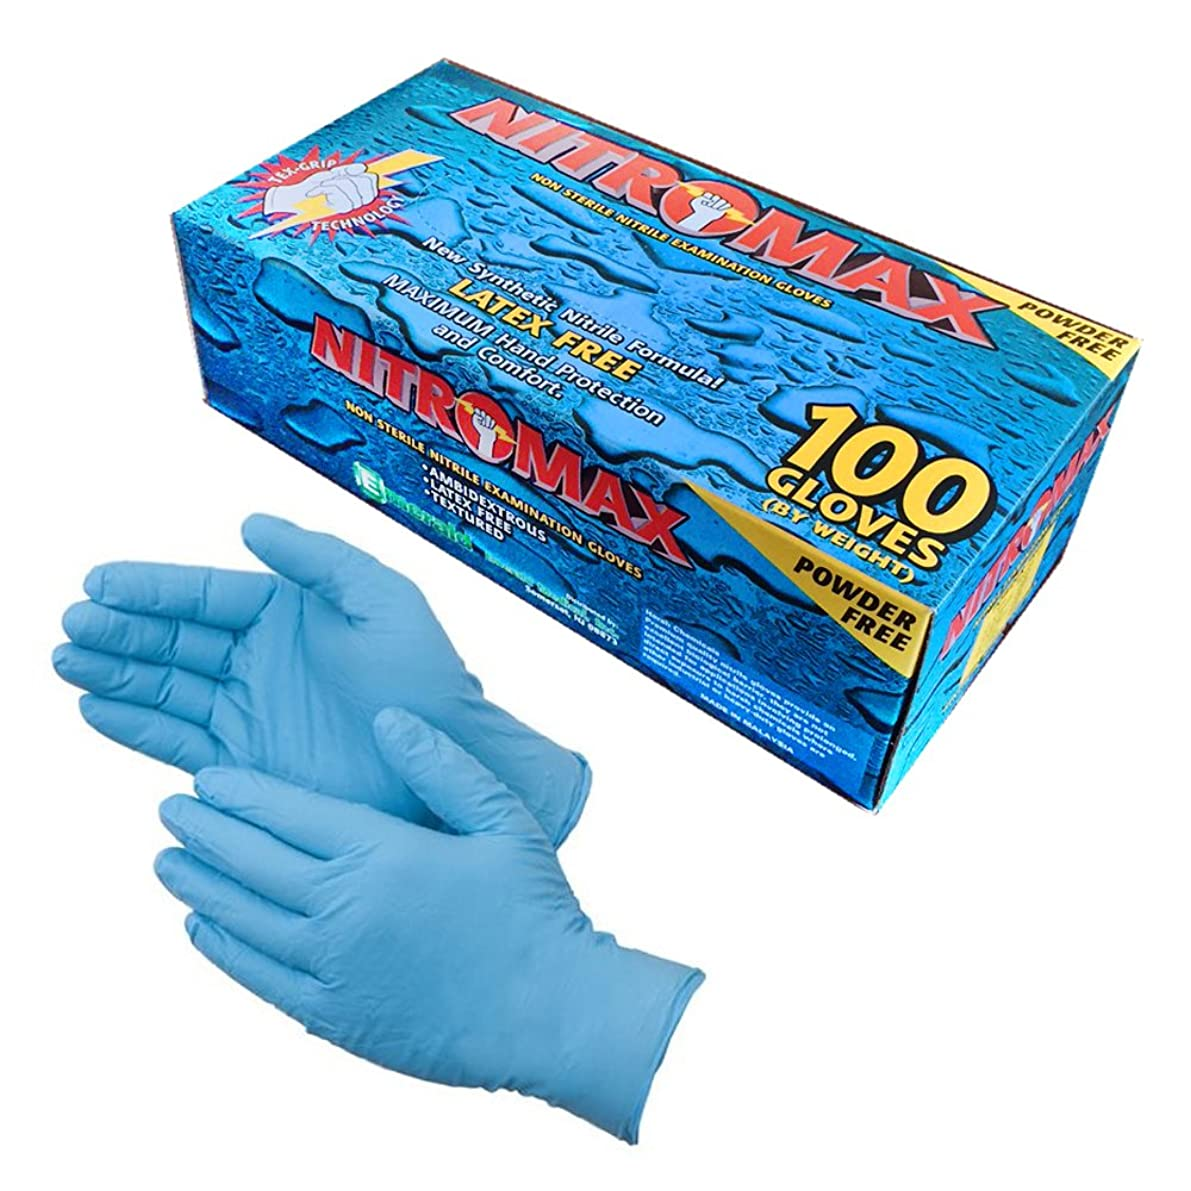 遺伝的徐々に差別化するDisposable Gloves, 5 mil thick, Tear Resistant, Latex Free, Nitrile, Powder Free, Large, 100 count by Honest E-tailers